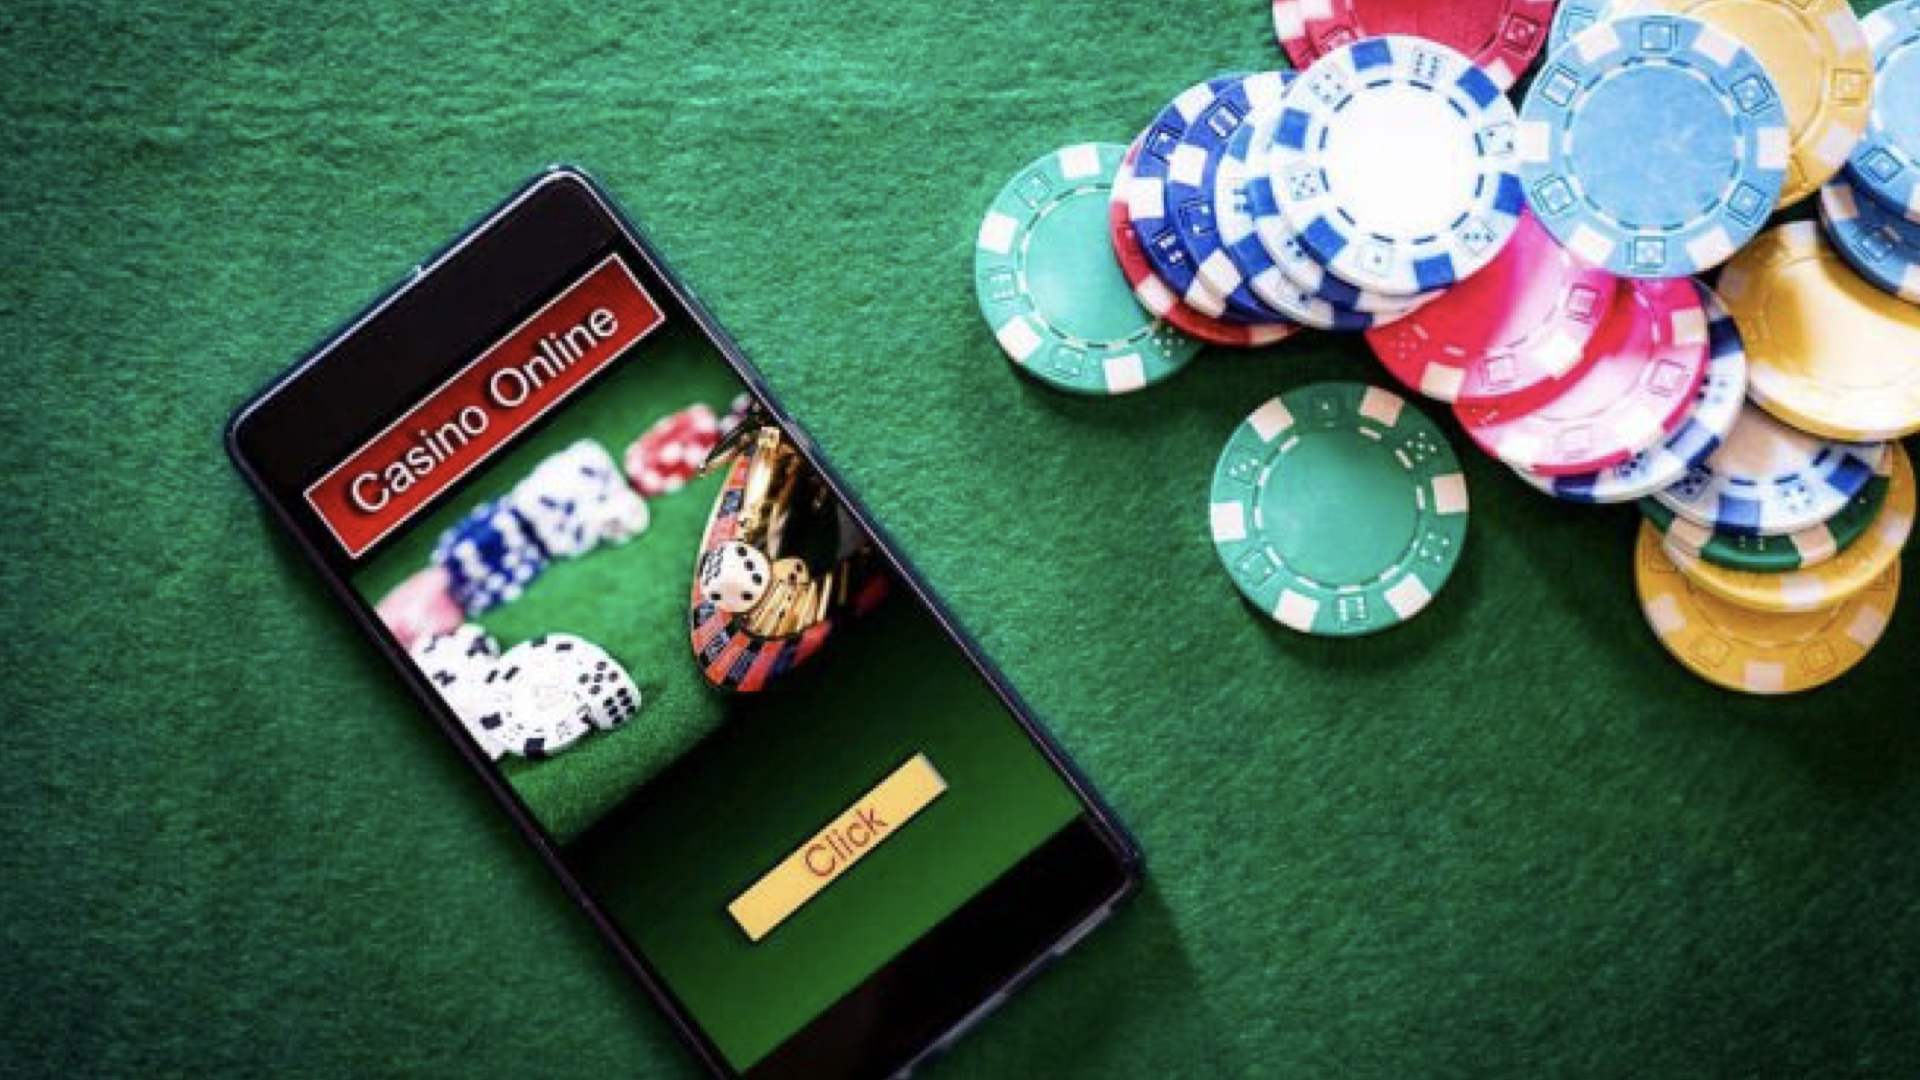 Asia is the main promoter continent for sagame88 and all its online gambling